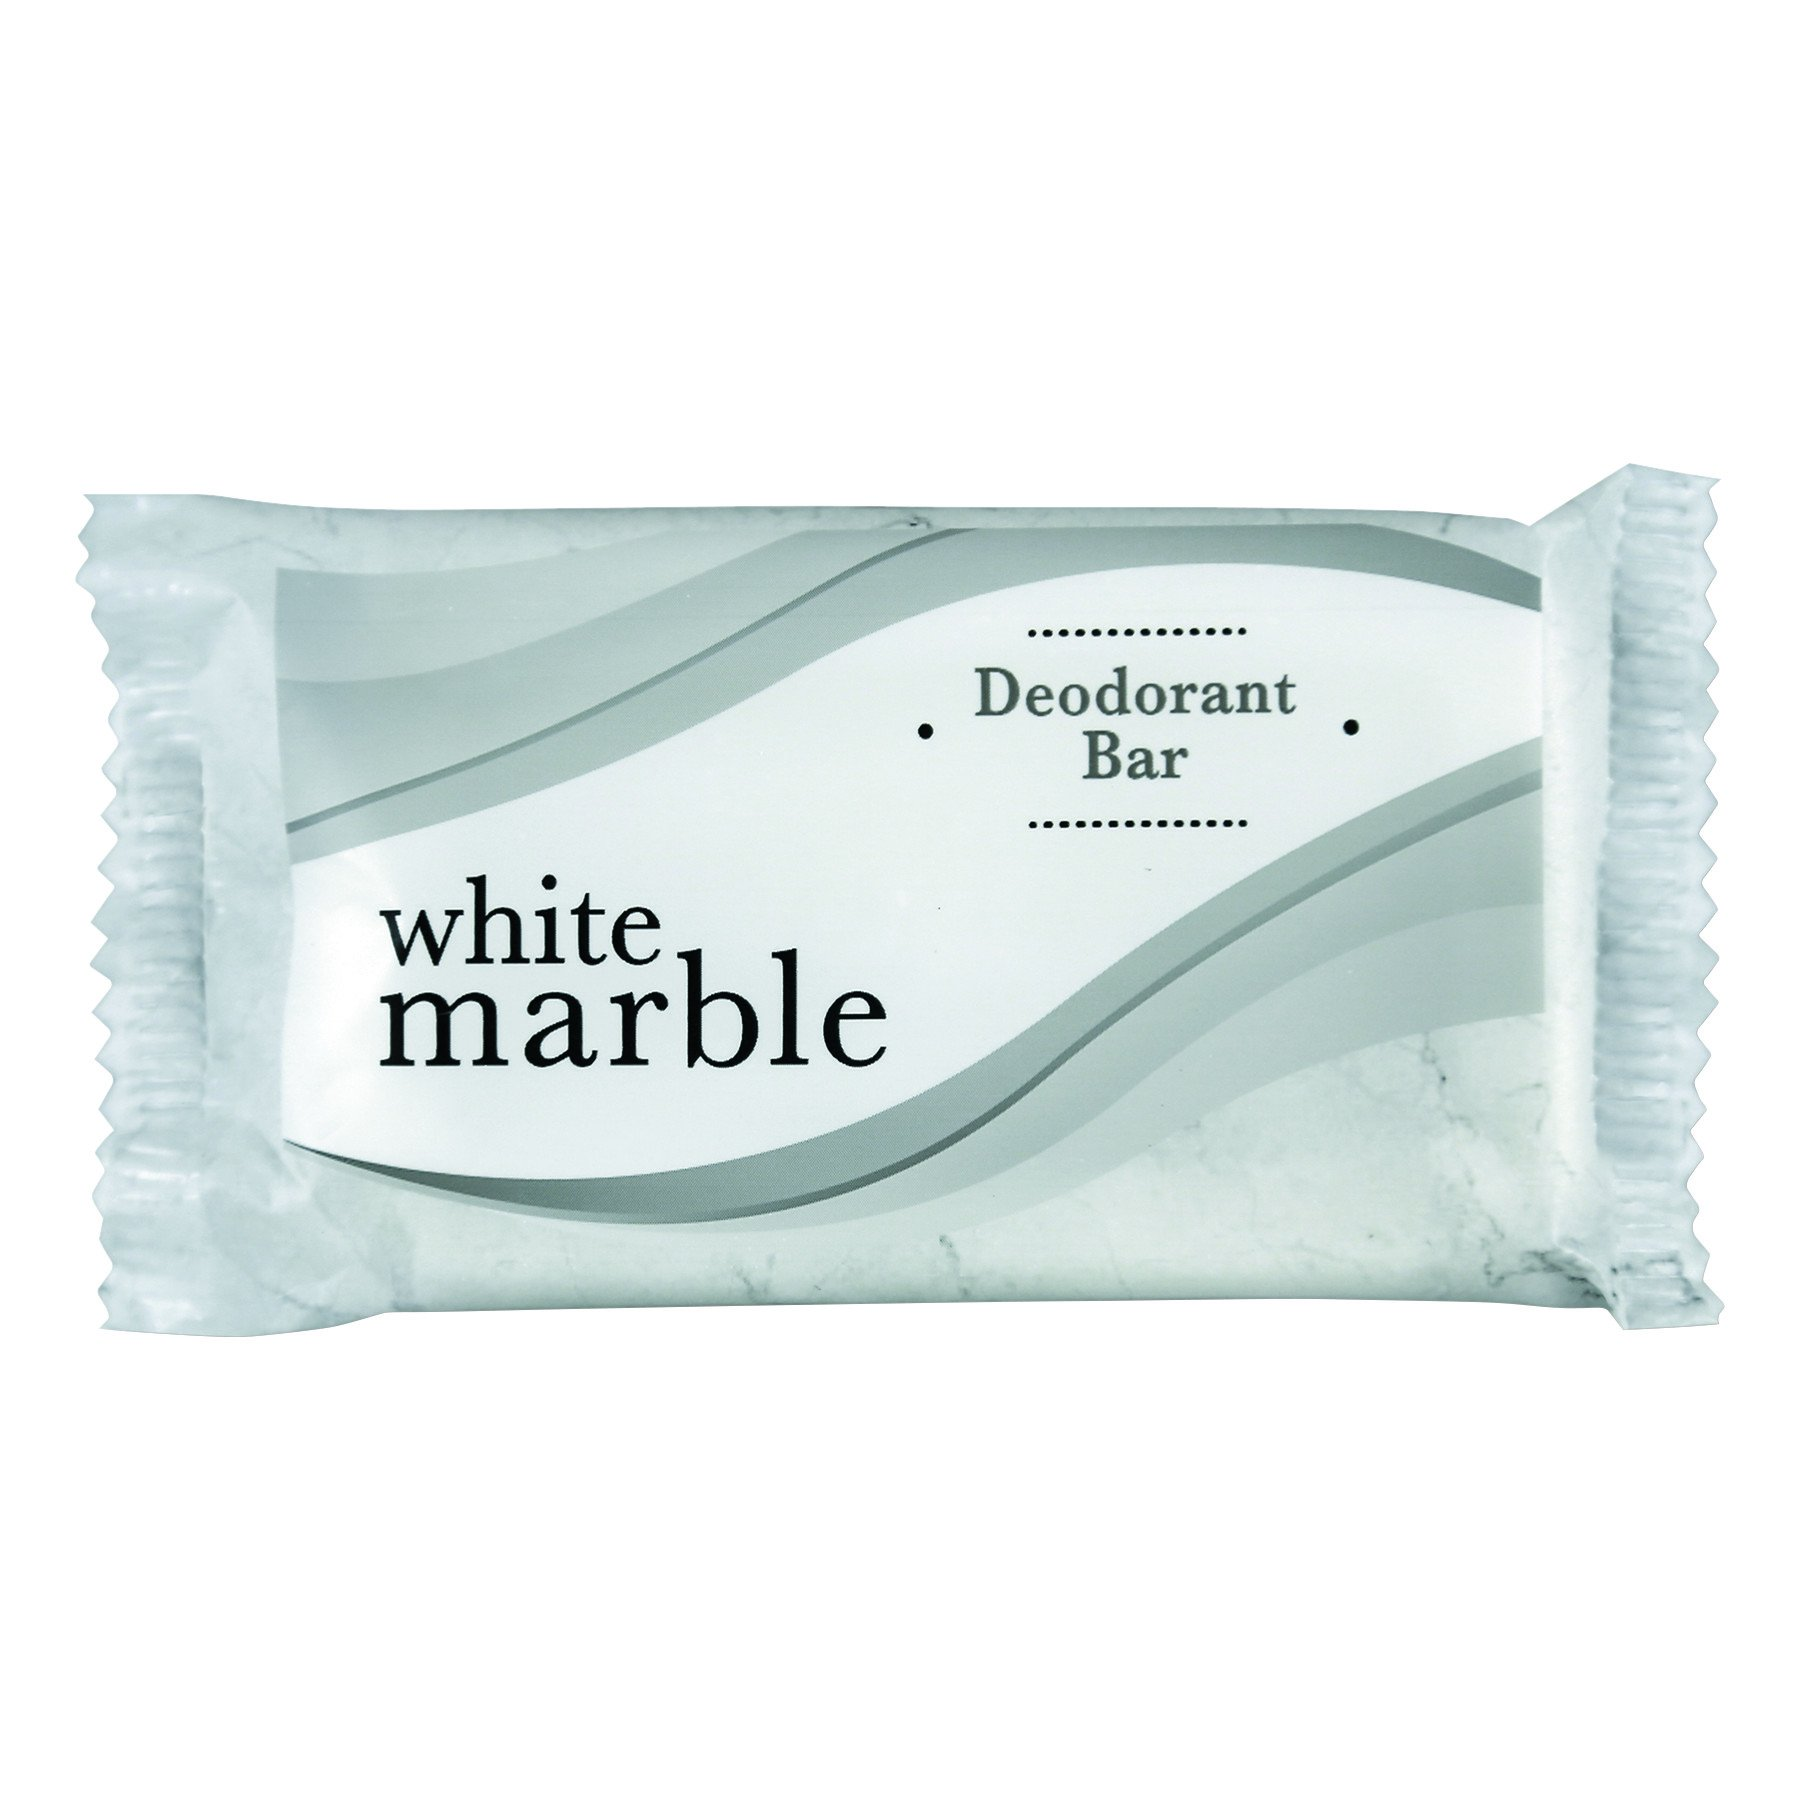 Dial Professional 00194, White Marble Guest Amenities Deodorant Soap, Individually Wrapped, 1.5 OZ (Case of 500)